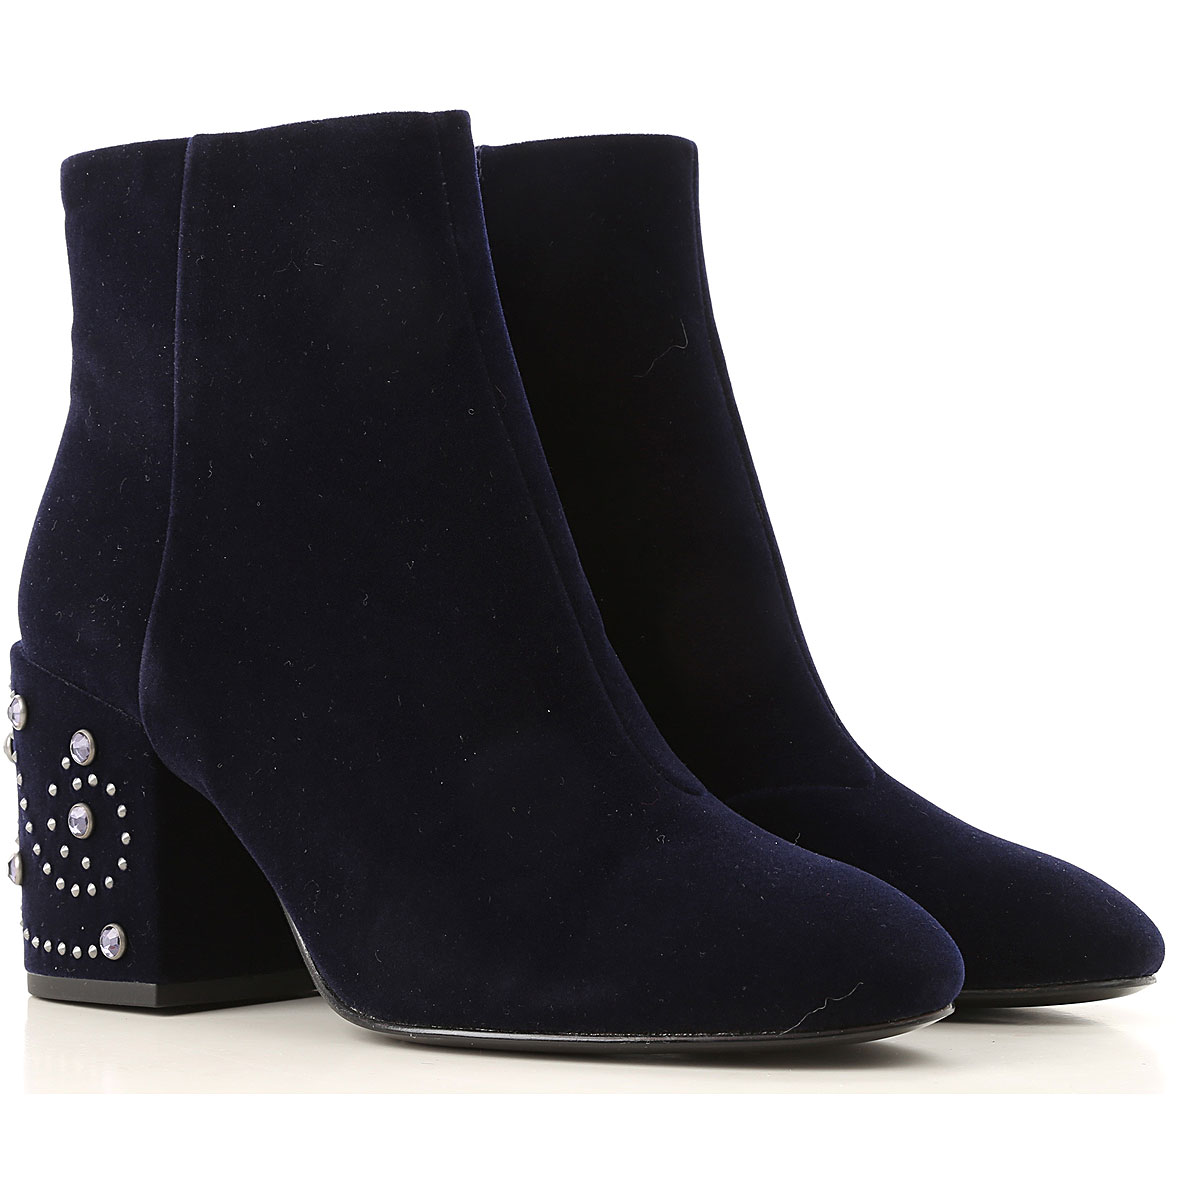 Ash Boots for Women Booties On Sale SE - GOOFASH